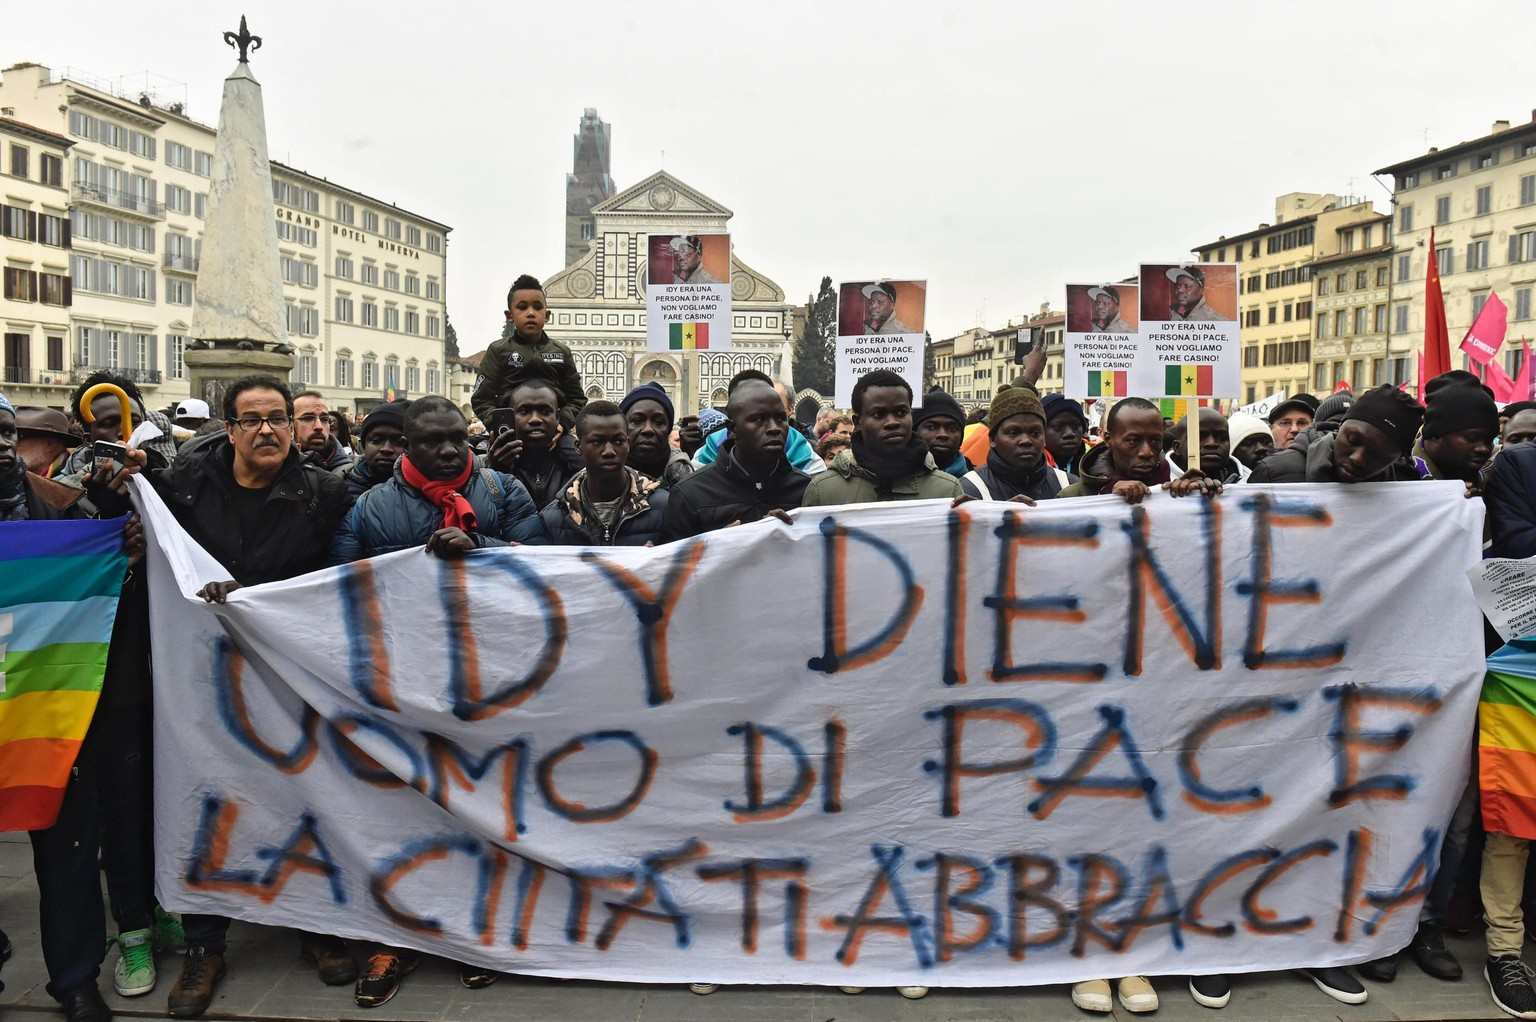 epa06594103 Members of the Senegalese community stage a demonstration in memory of Idy Diene, who died in Florence on 05 March following a fatal shooting, Florence, Italy, 10 March 2018.  EPA/MAURIZIO DEGL INNOCENTI